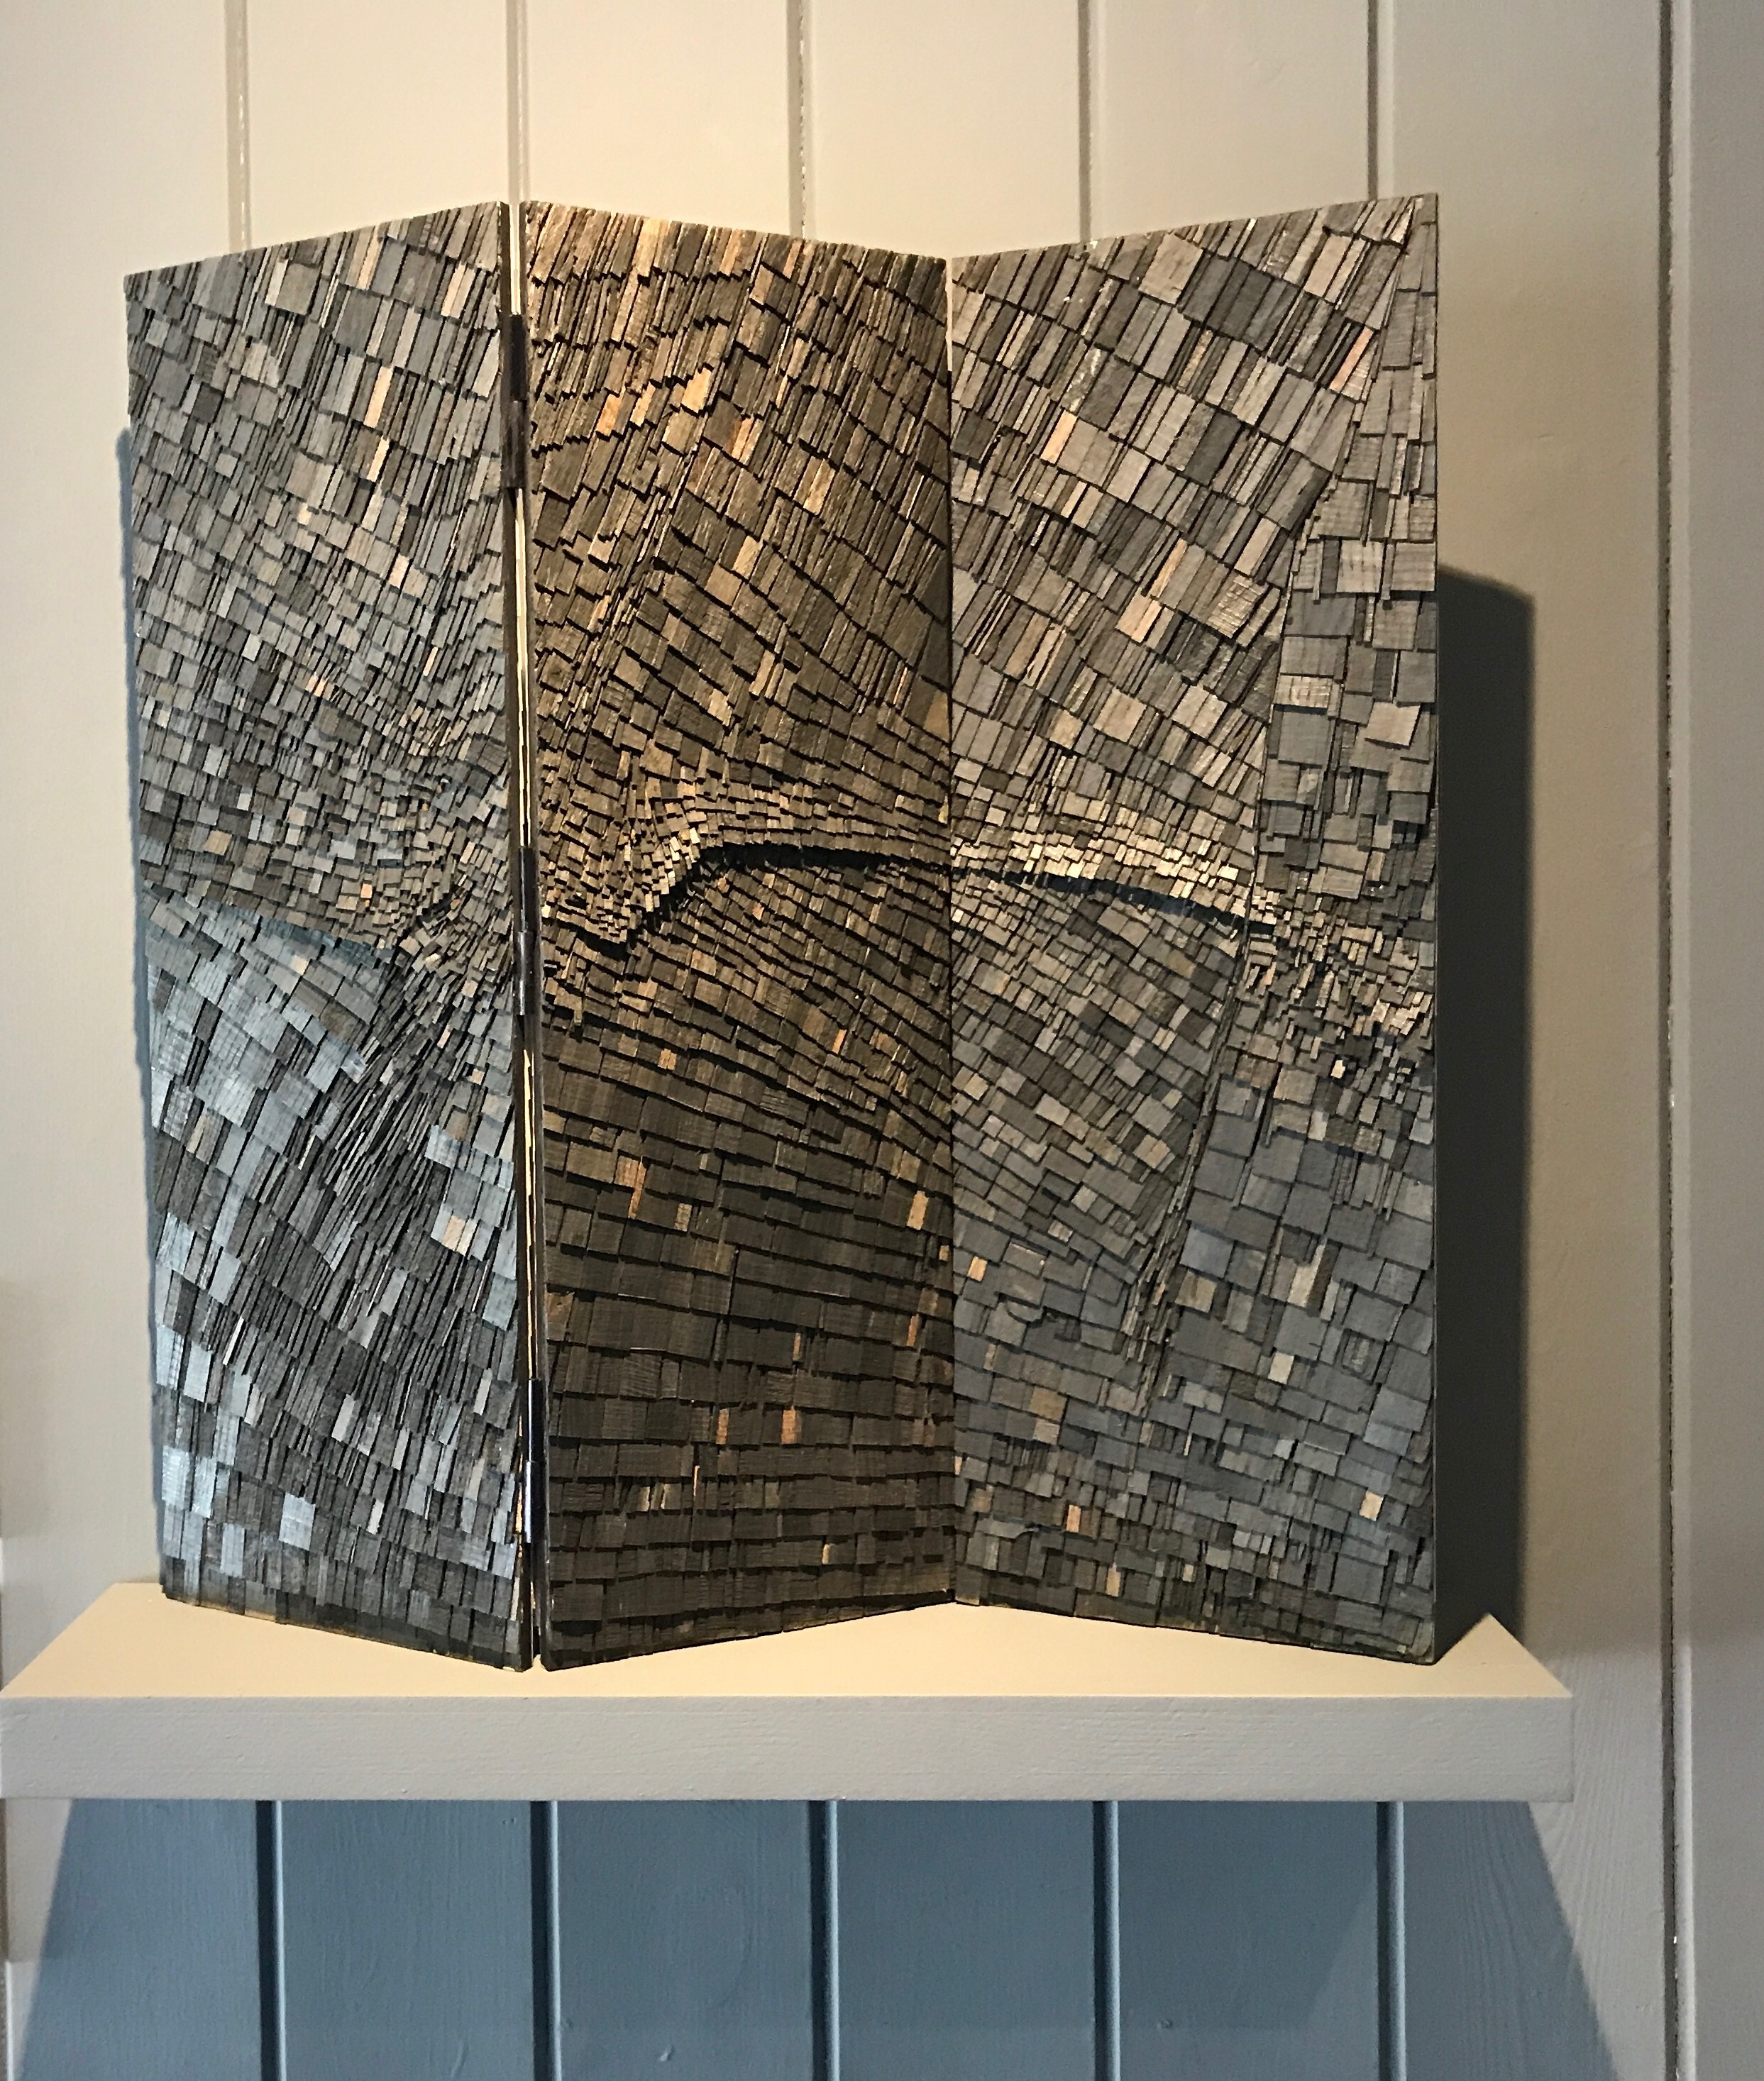 Wycliffe Stutchbury    Hundred Foot Drain, 2017    Excavated bog oak, Chatteris, Camridgeshire   'My compositions from fallen and forgotten timber are studies in the narrative beauty of wood'.   £2500.00 SOLD